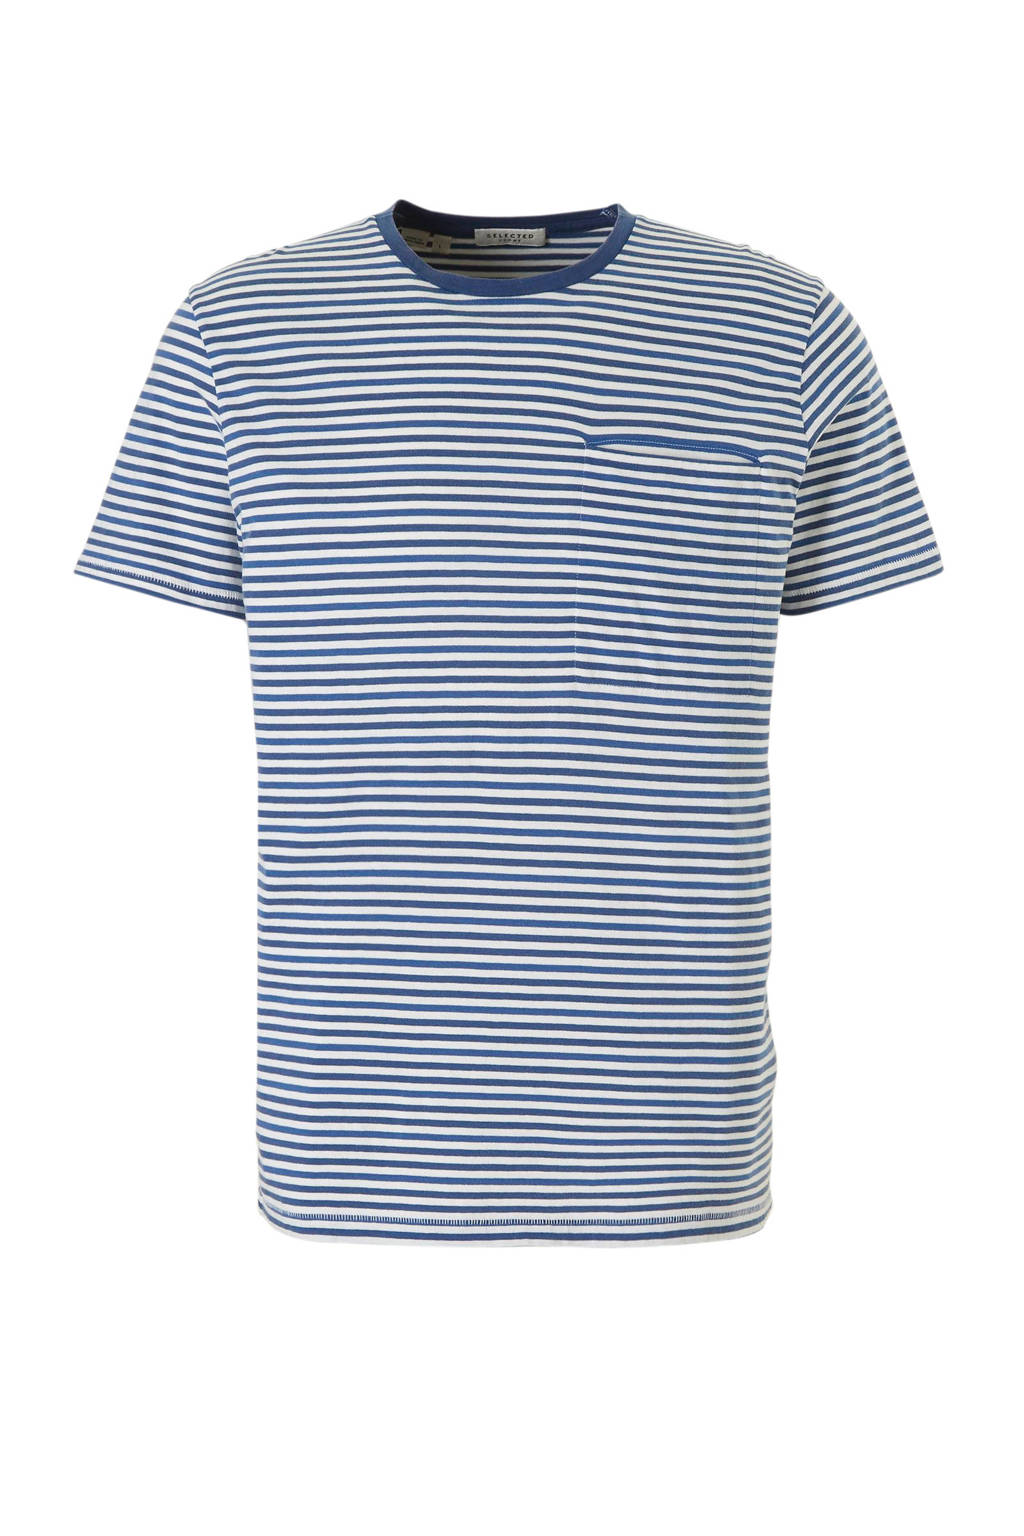 SELECTED HOMME T-shirt, Blauw/wit